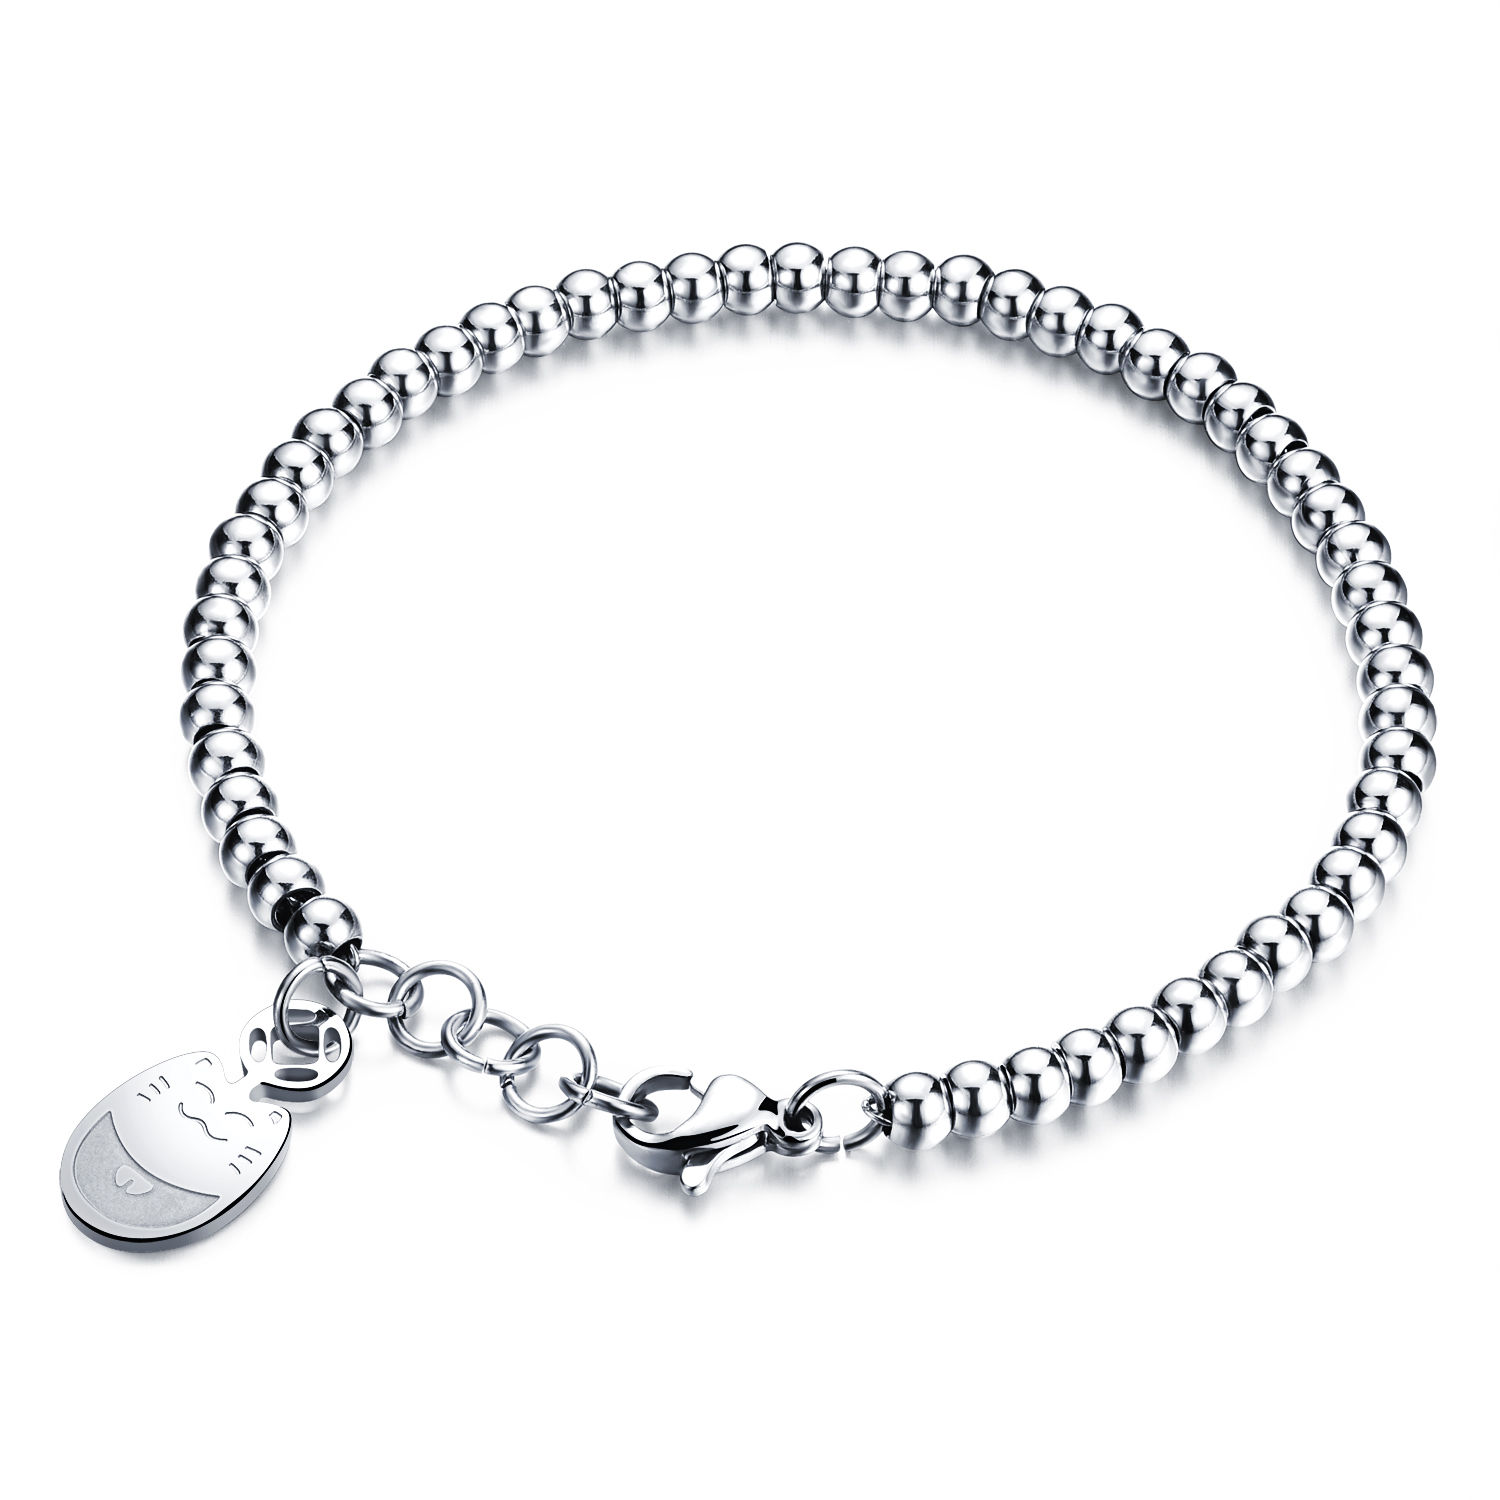 1500x1500 Stainless Steel Solid Ball Chain With Dolphins Charms Bracelet